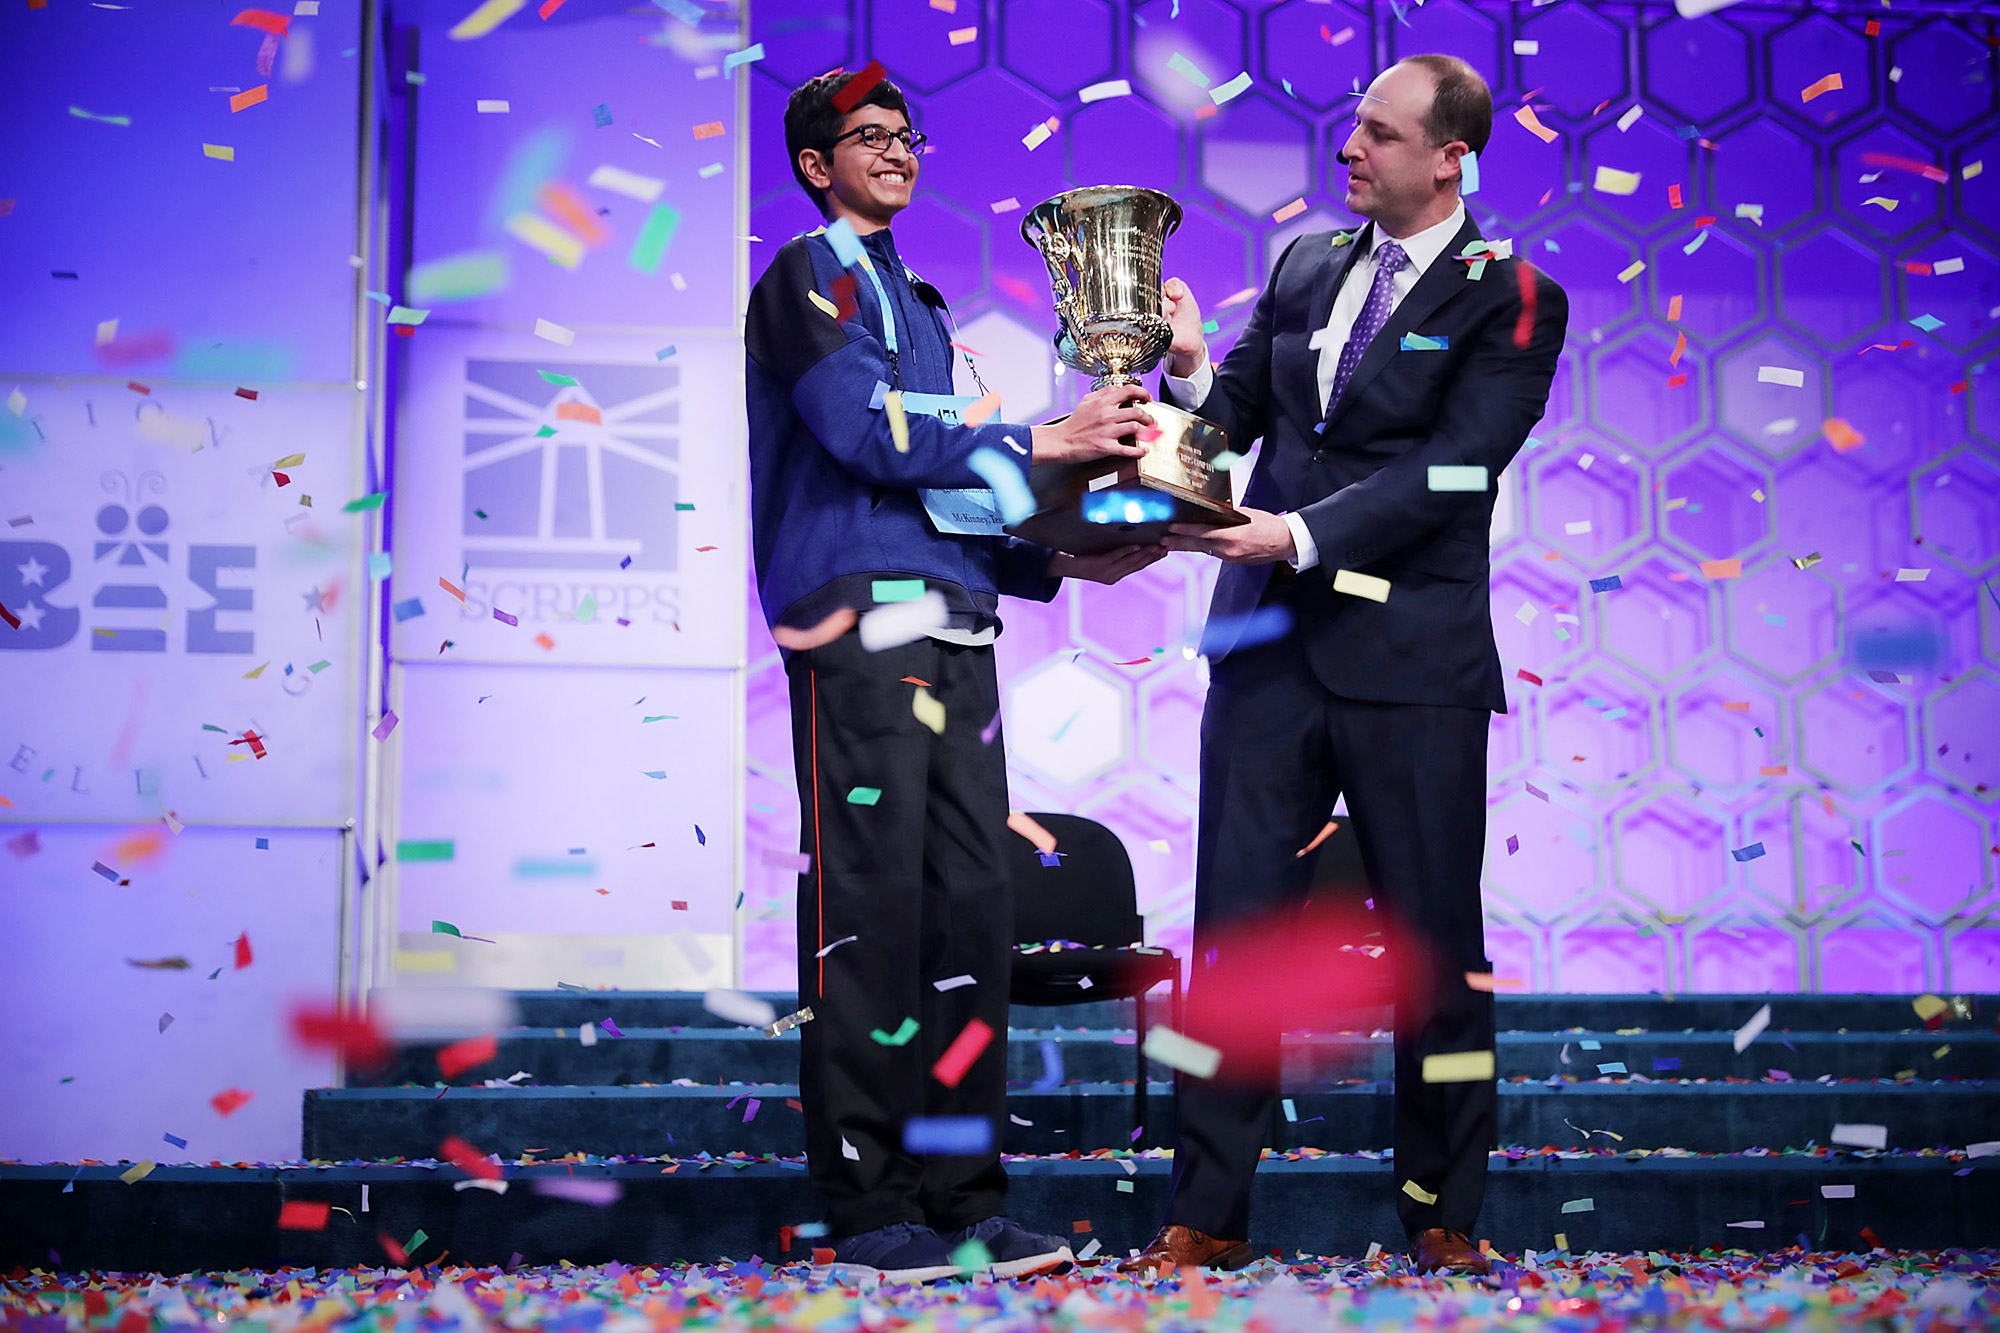 Karthik Nemmani (L) poses with the championship trophy and E.W. Scripps Company CEO Adam Symson after Nemmani correctly spelled the word 'koinonia' to win the 91st Scripps National Spelling Bee at the Gaylord National Resort and Convention Center May 31, 2018 in National Harbor, Maryland